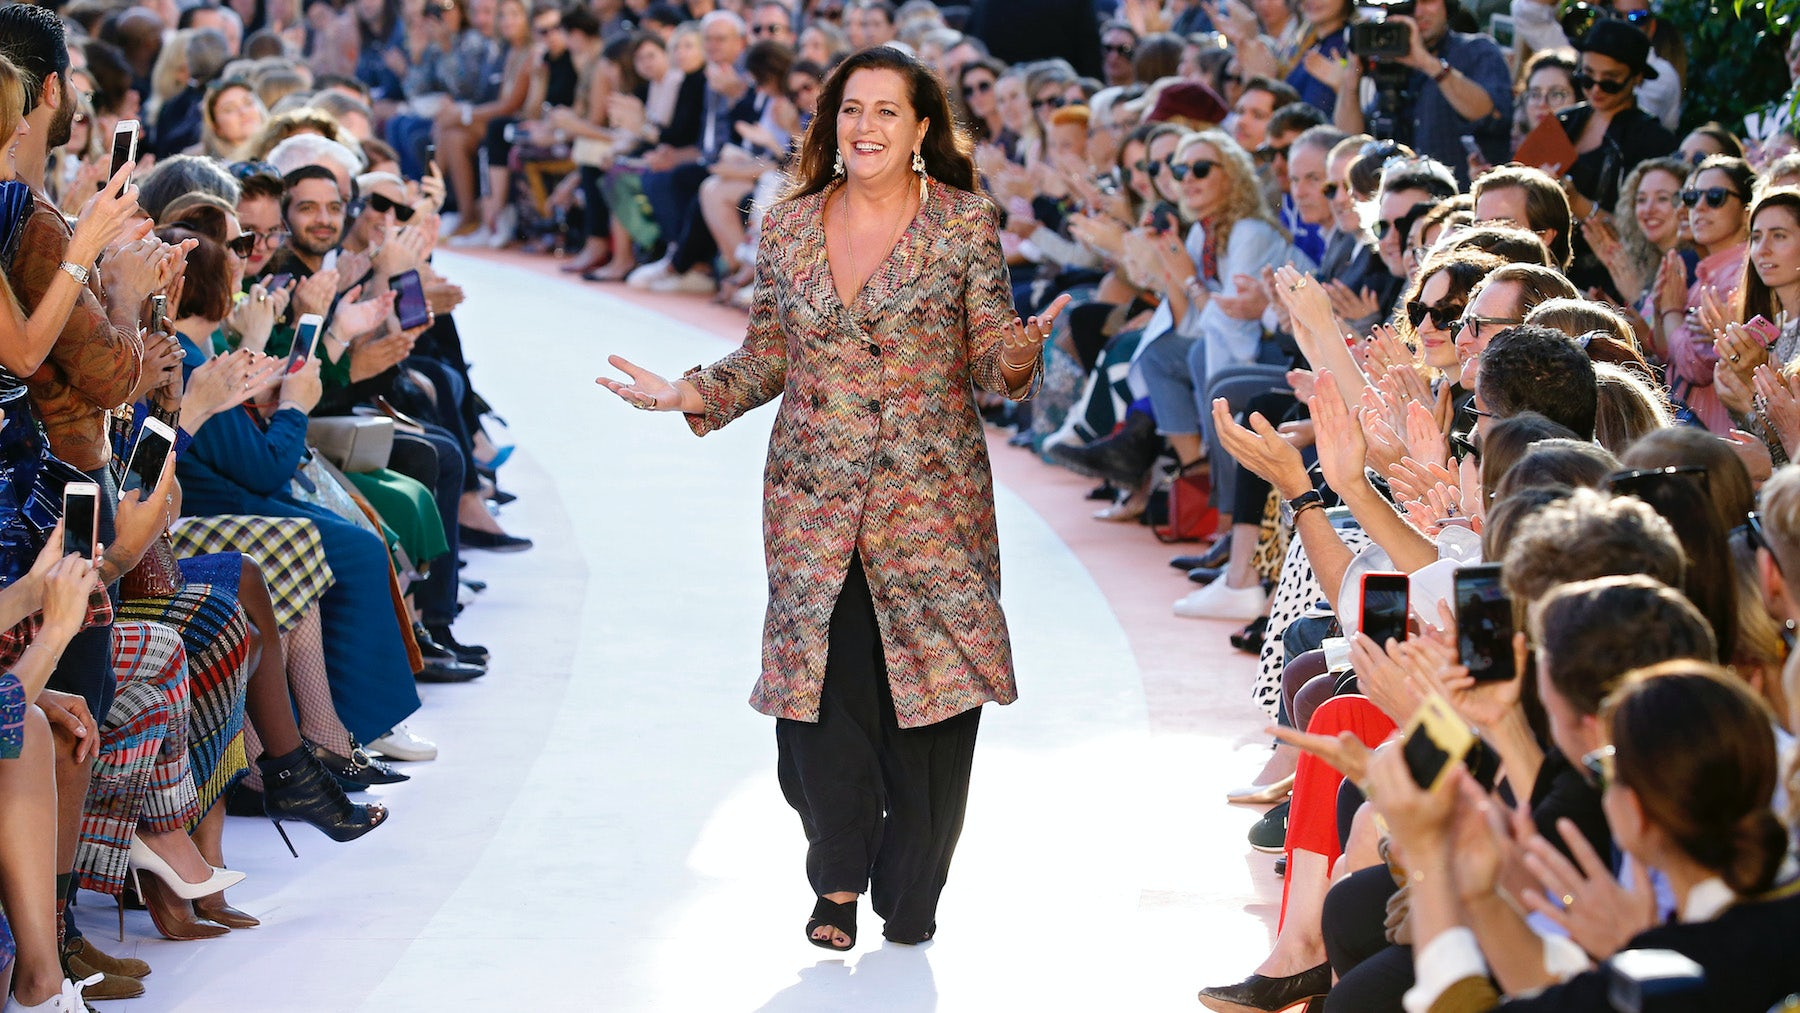 Missoni Sells Minority Stake to Private Equity Firm in €70 Million Deal